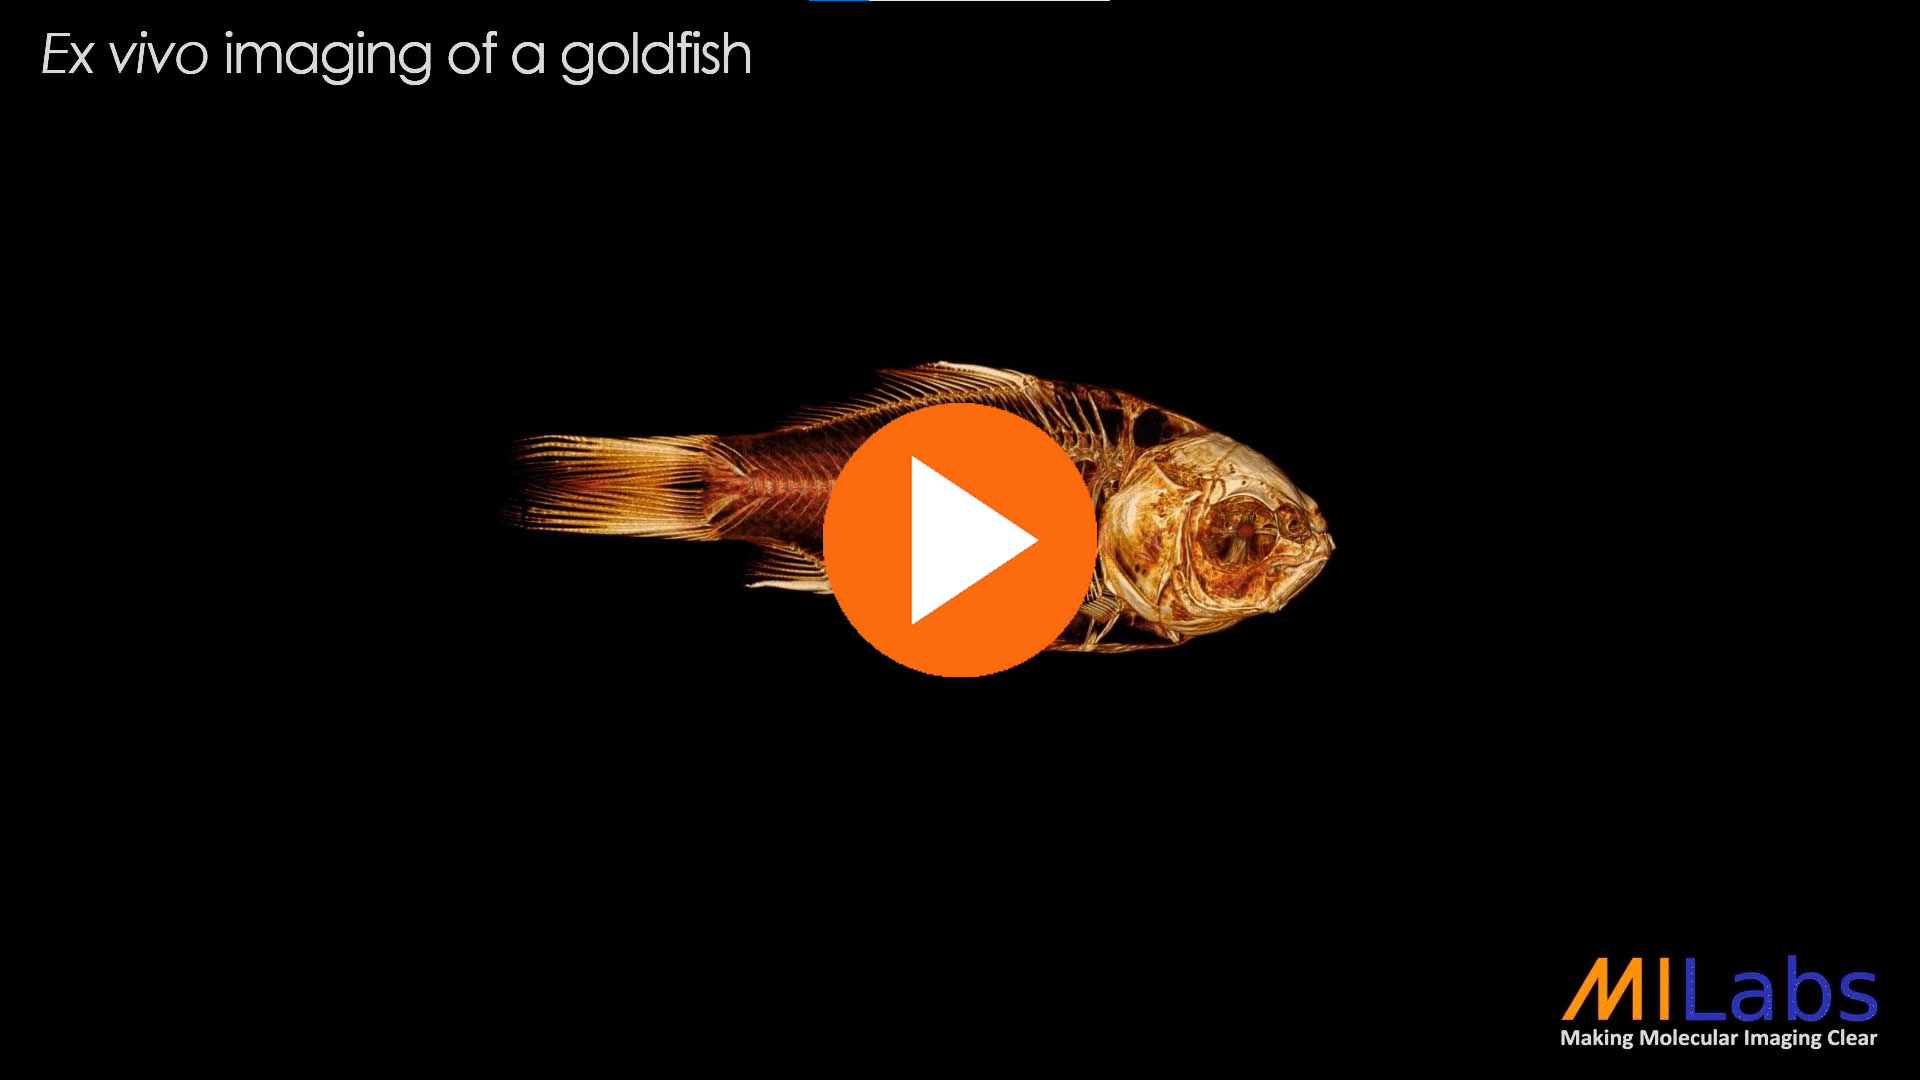 exvivo imaging of a gold fish with microCT for zoology purposes